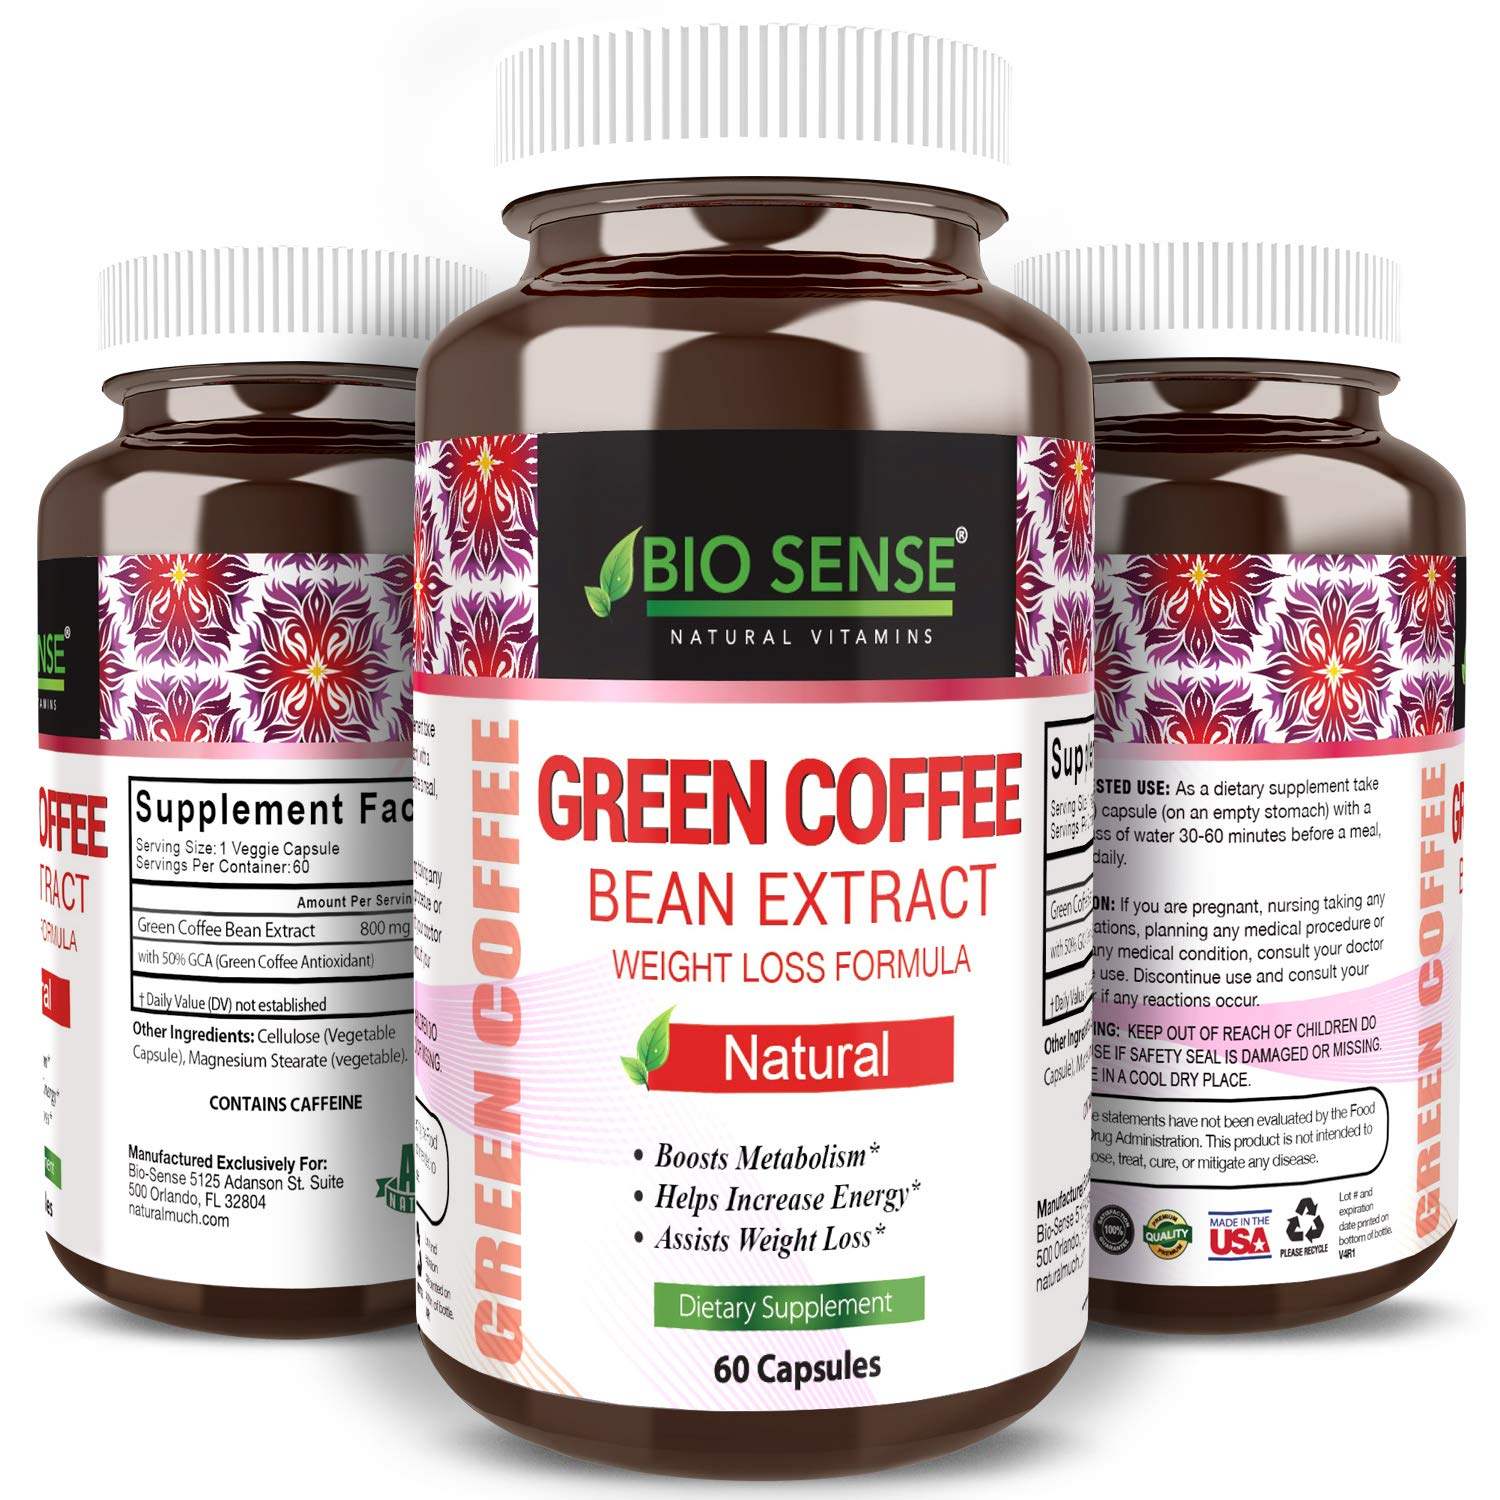 Extra Strength Green Coffee Bean Extract Pills - 800 mg Pure Premium Beans - Best Natural Max Weight Loss Supplement Super Cleanse Benefits - Raw Fat Burner Antioxidant Extracts by Bio Sense